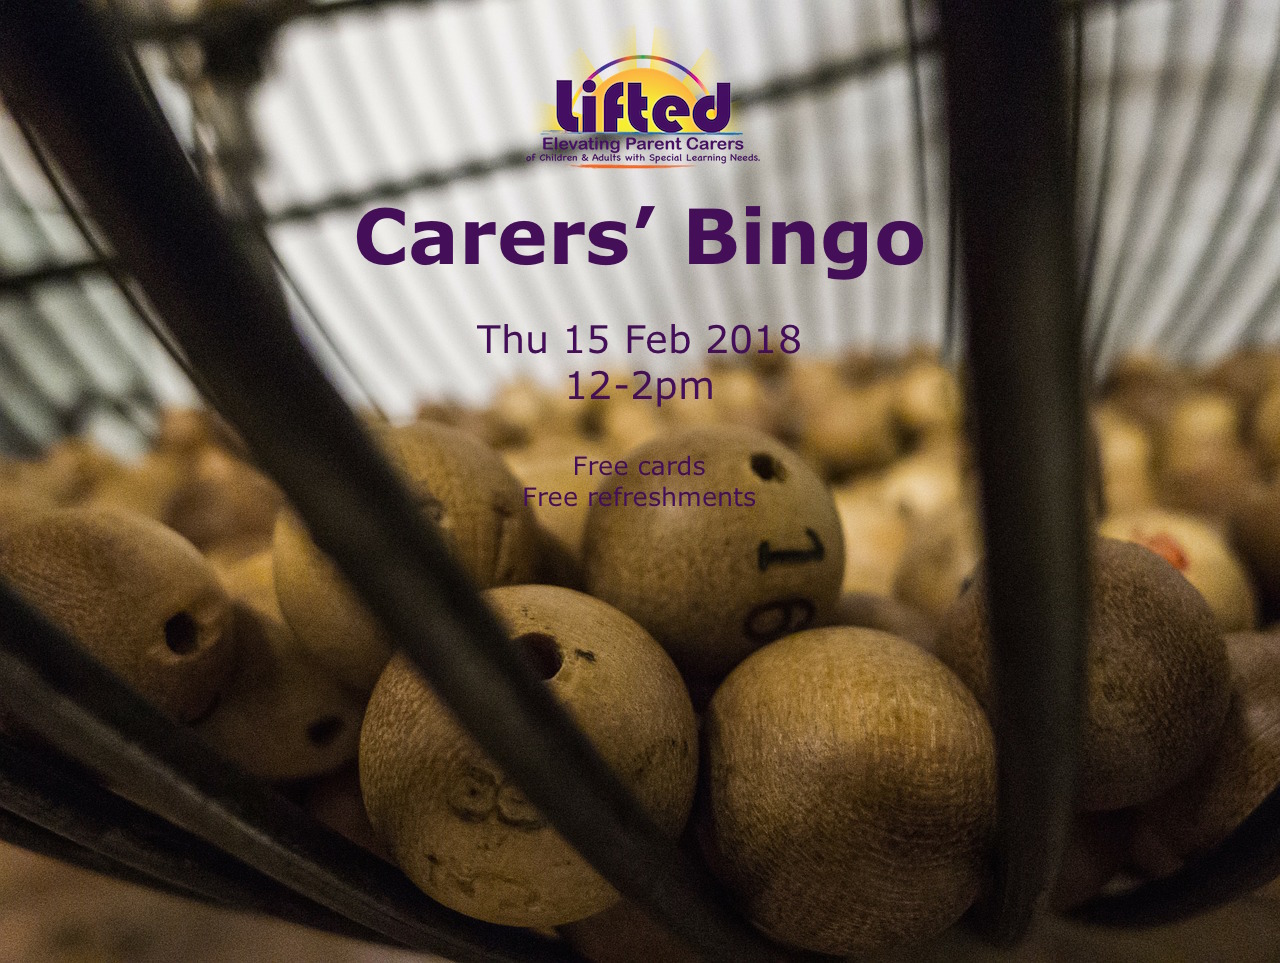 Lifted Carers' Bingo 2018 poster | original image from pixabay.com